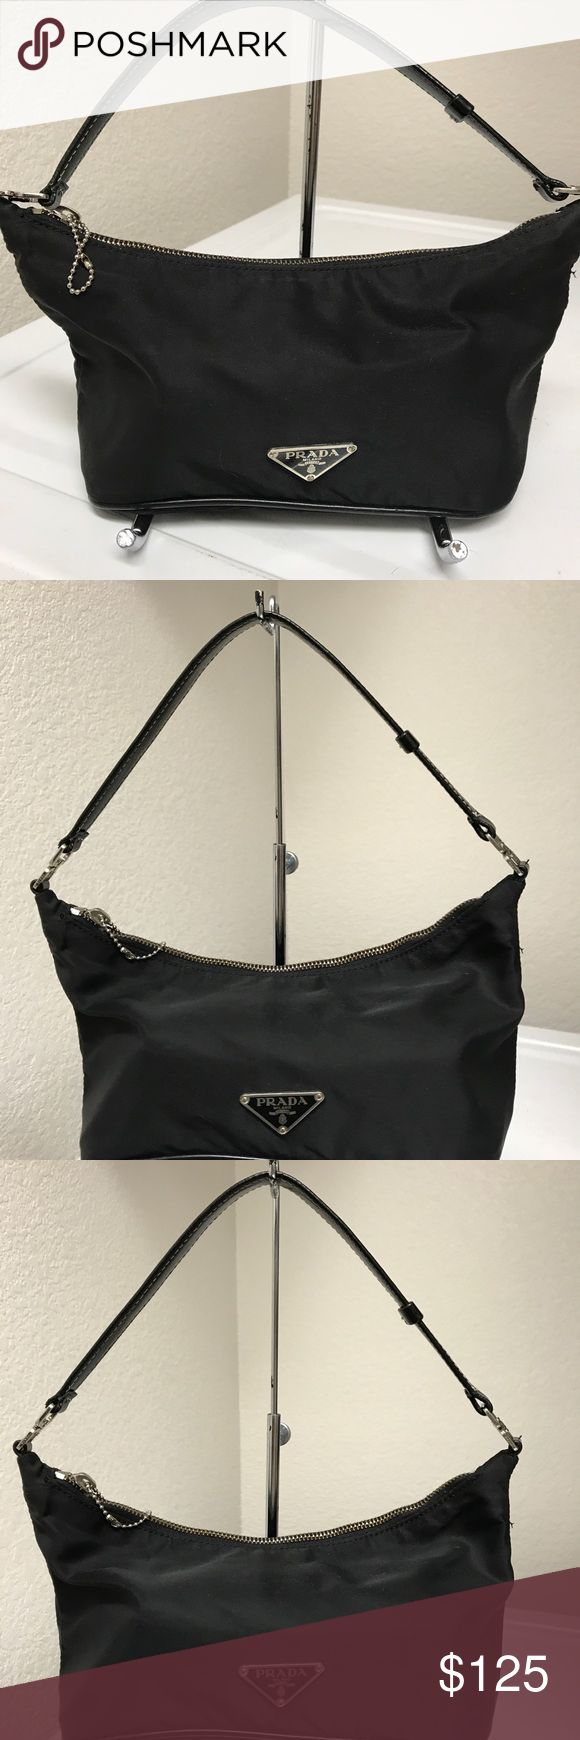 Prada Satchel Great condition authentic bag just the pull tab on zipper is missing. Prada Bags Satchels